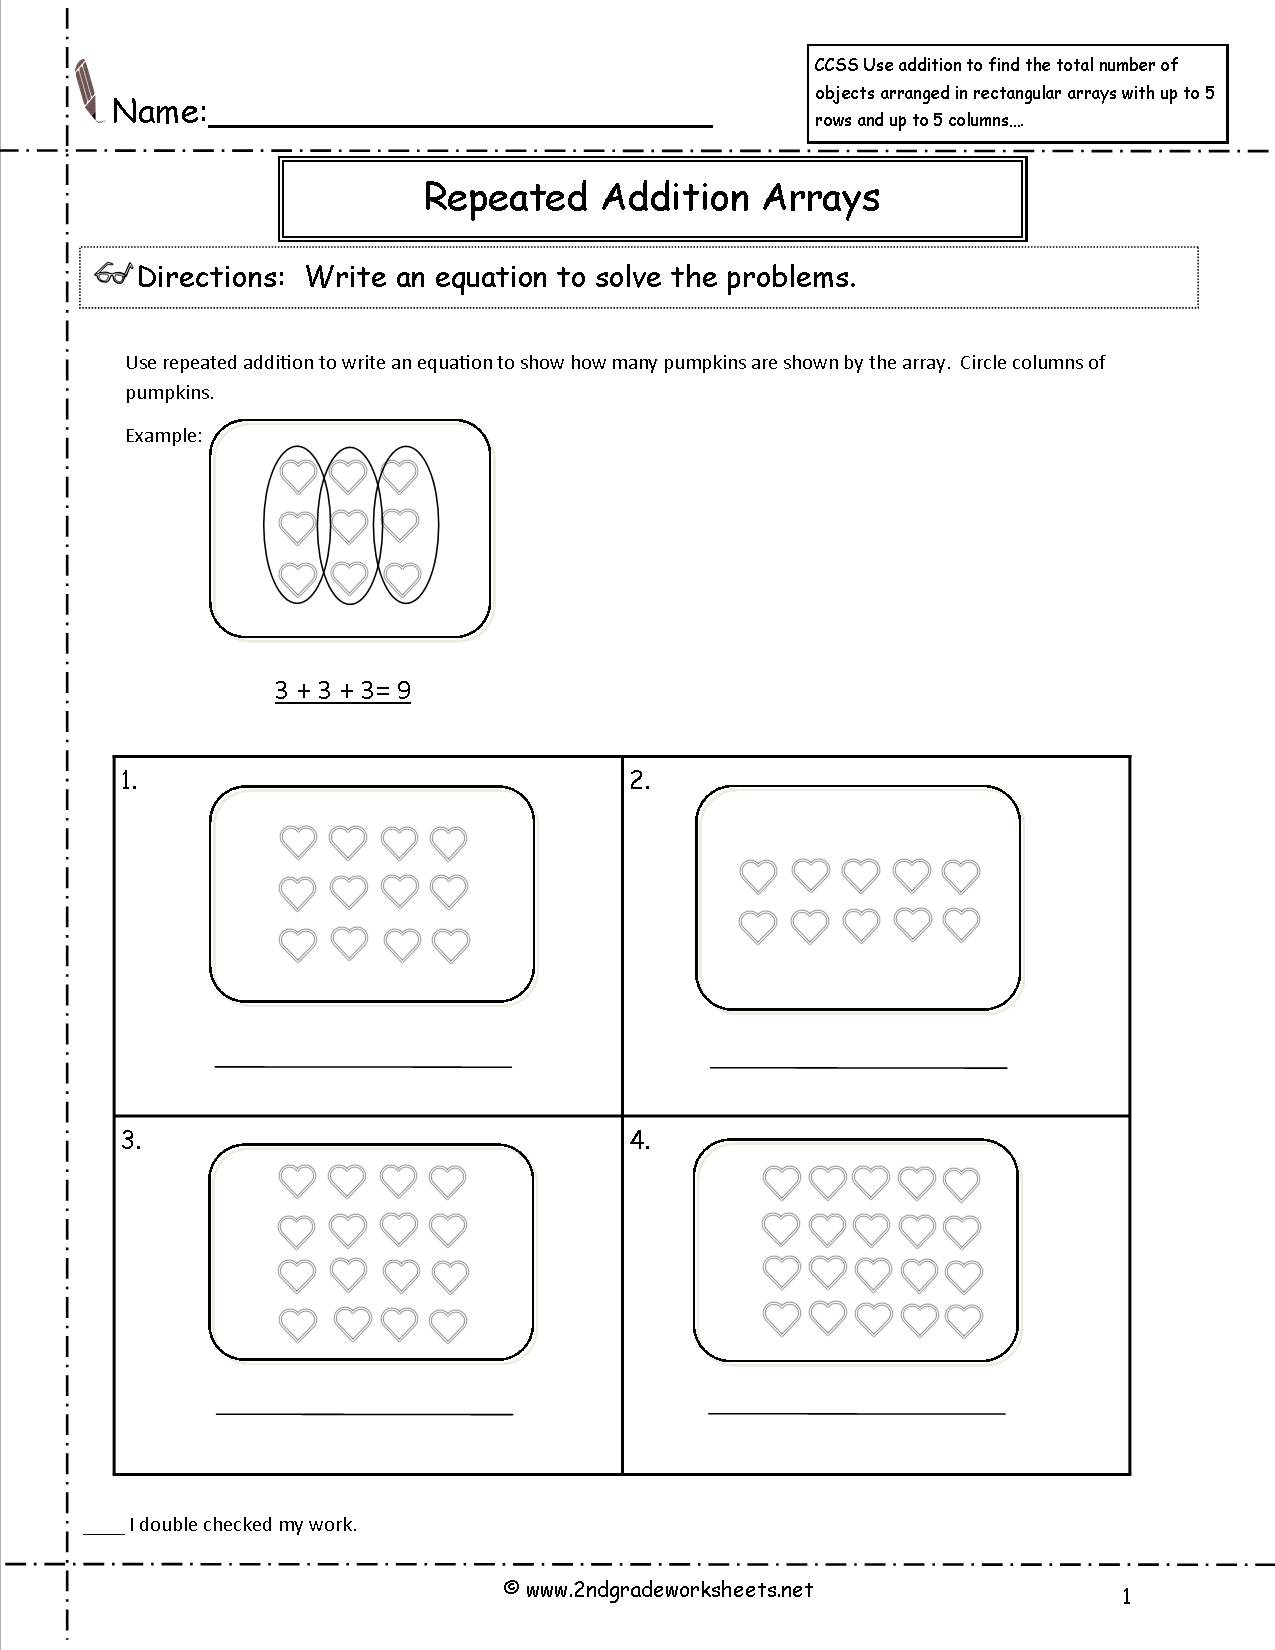 17 Best Images Of Repeated Addition Worksheets